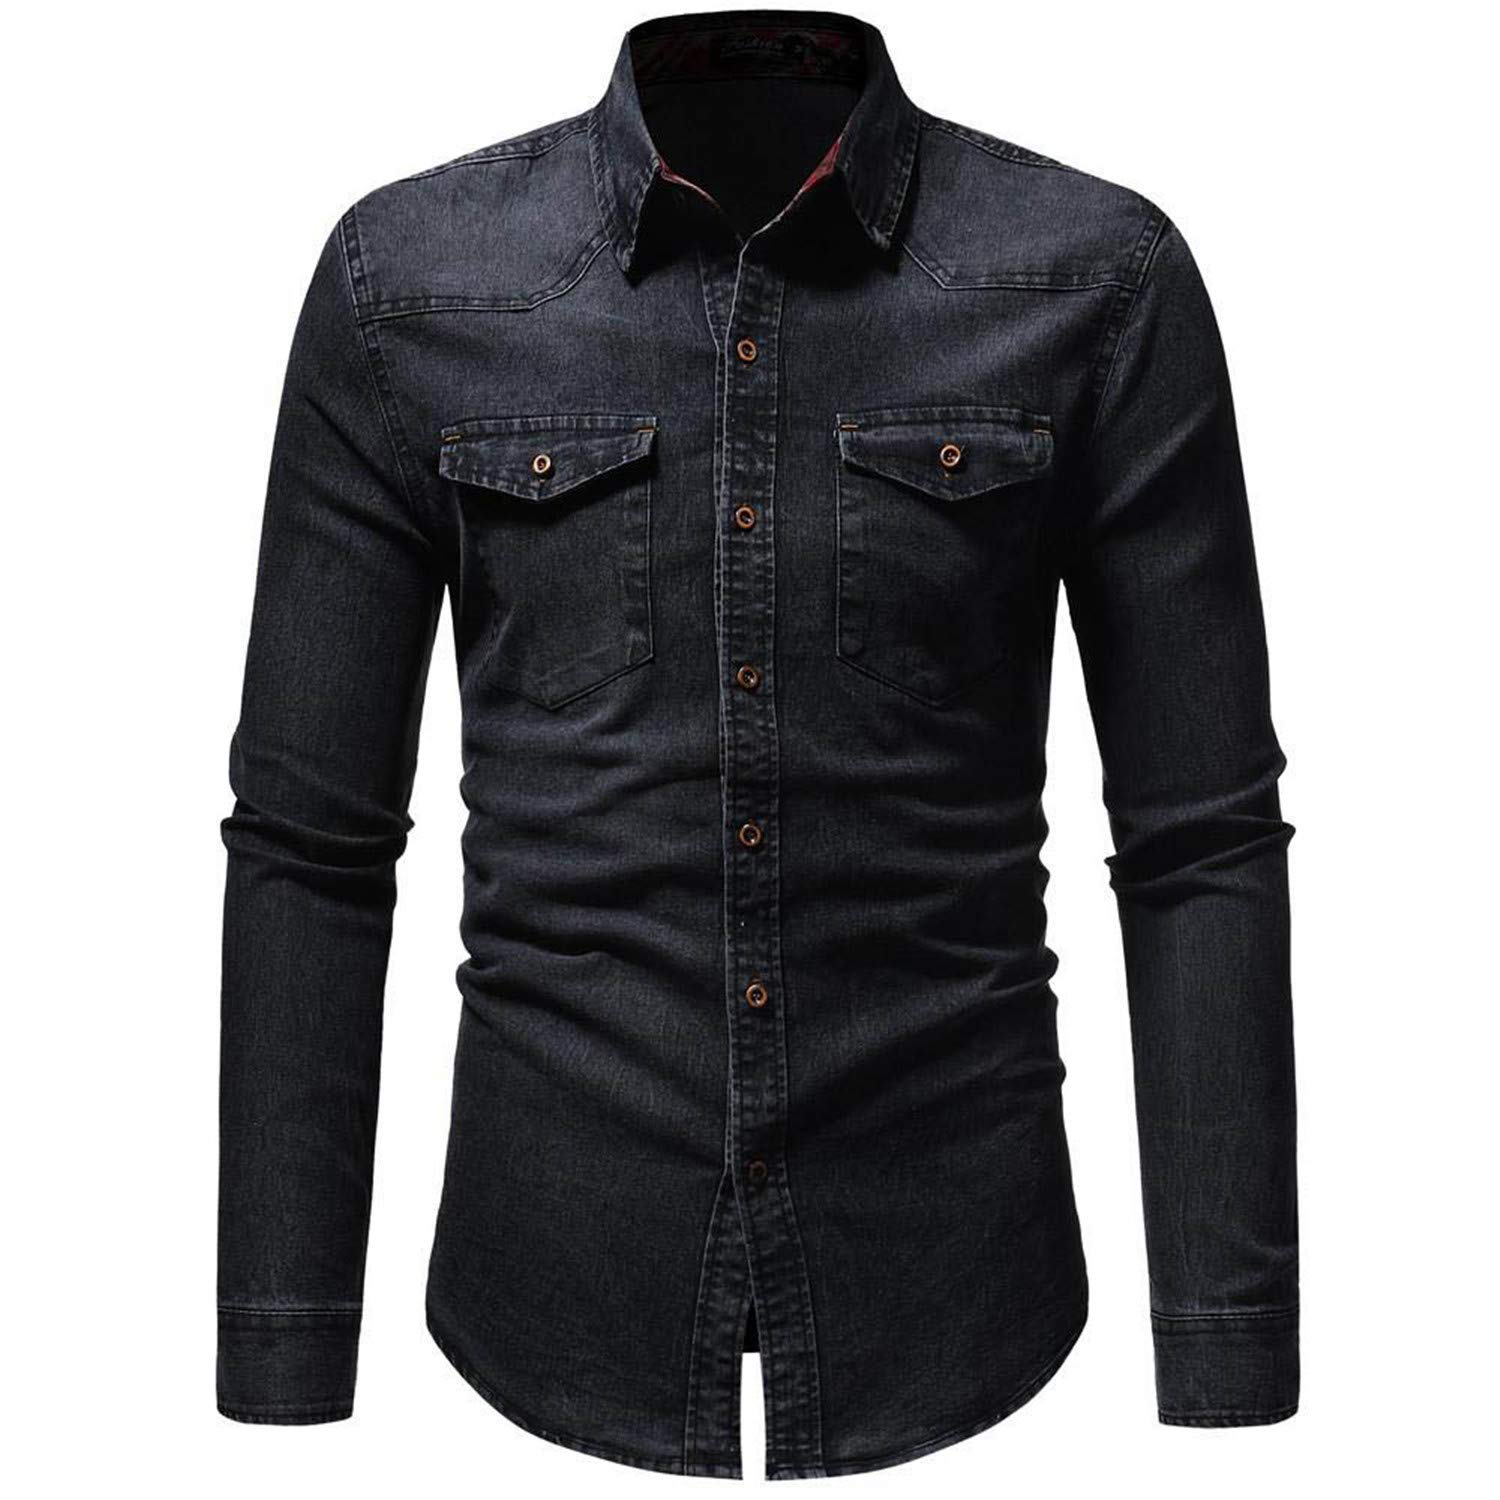 Gomfe Mens Business Work Shirt Vintage Distressed Solid Denim Long Sleeve Top Blouse